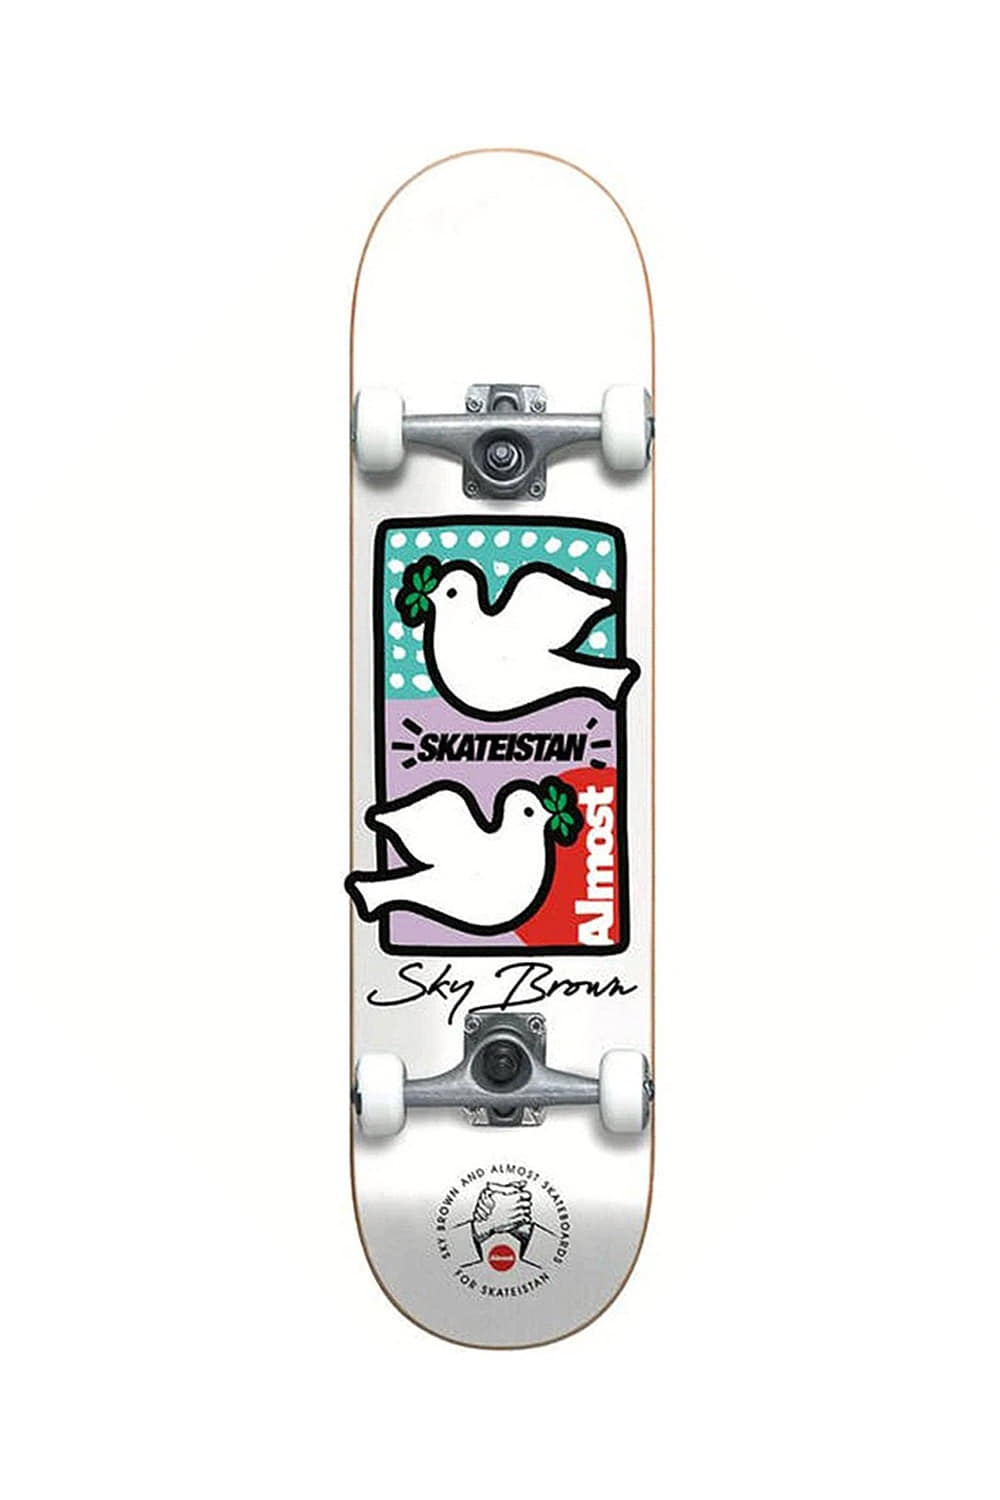 올모스트 스케이트보드 컴플릿_ALMOST_SKY BROWN DOUBLE DOVES SKATEISTAN (WHT) 7.875_Z1M9039WH